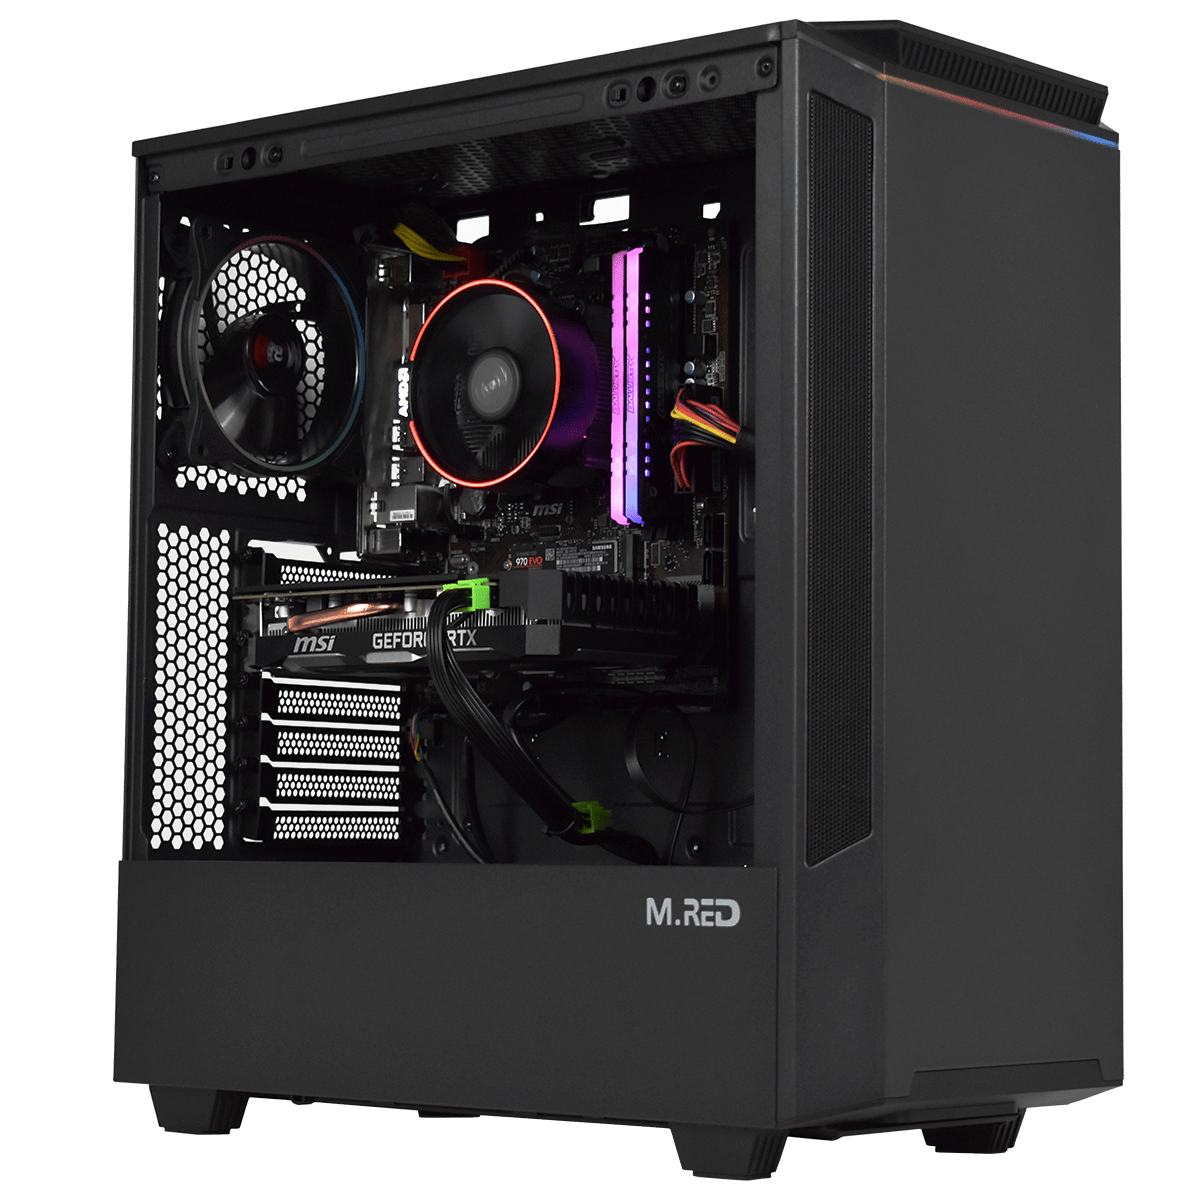 <span>PC</span> predator v3  ryzen 7 2700x 16go 1660super